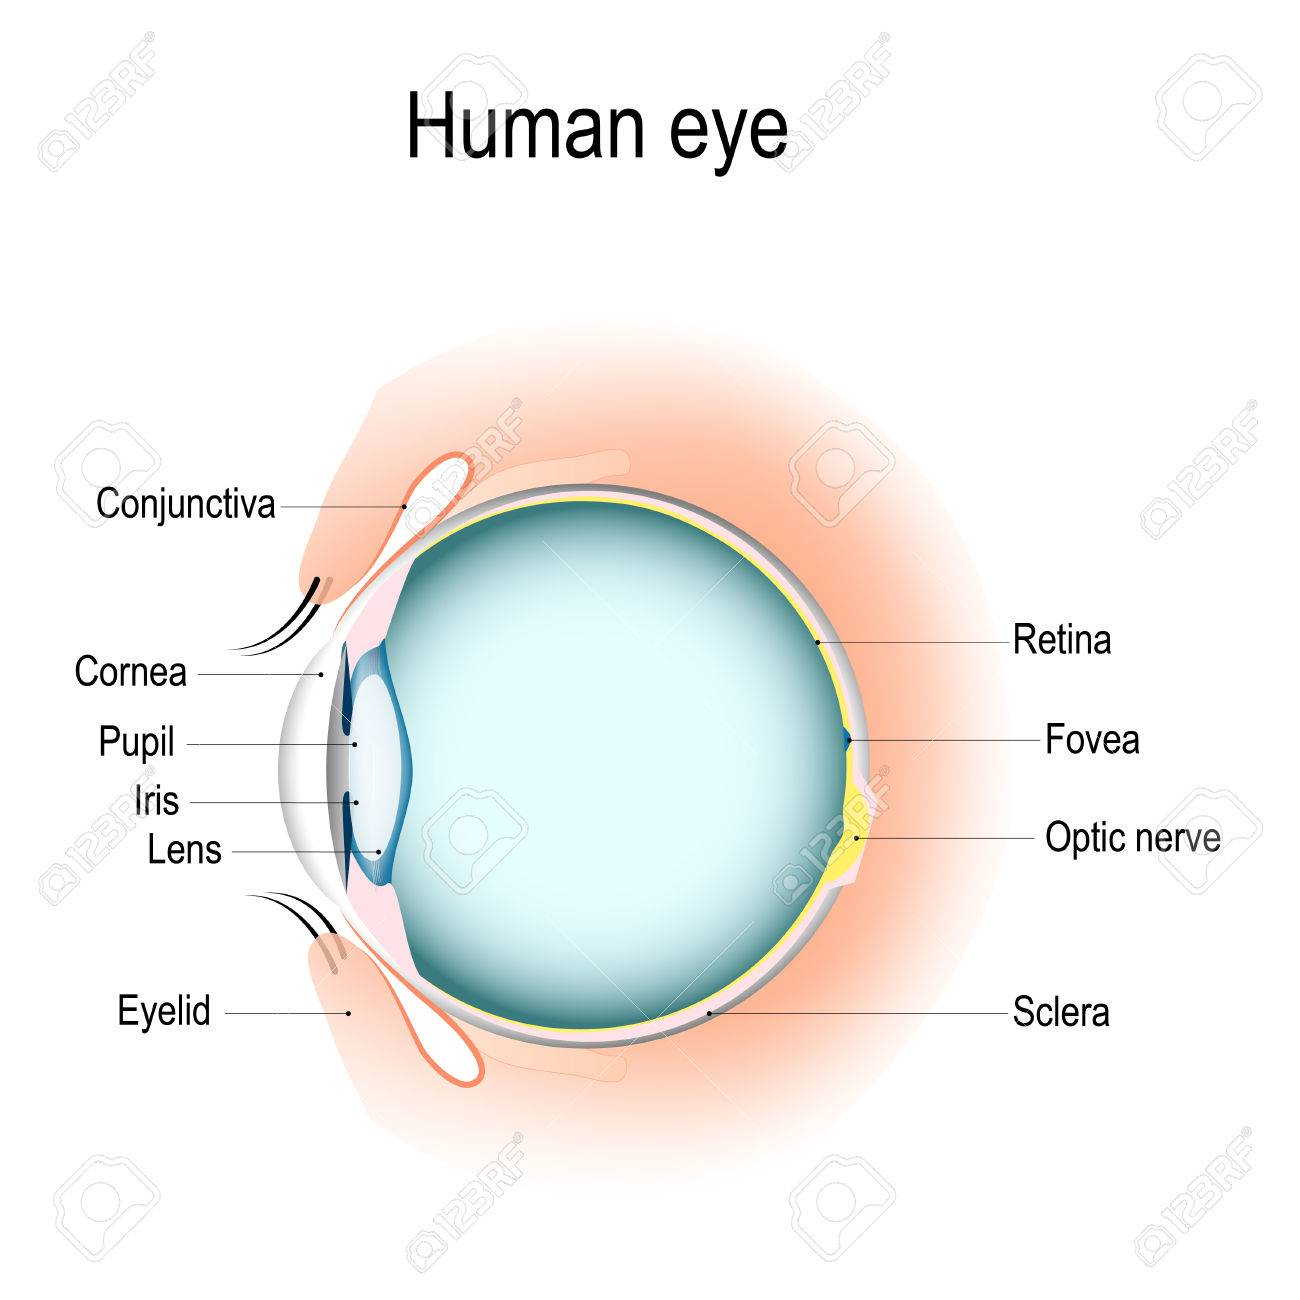 Anatomy Of The Human Eye Vertical Section Of The Eye And Eyelids